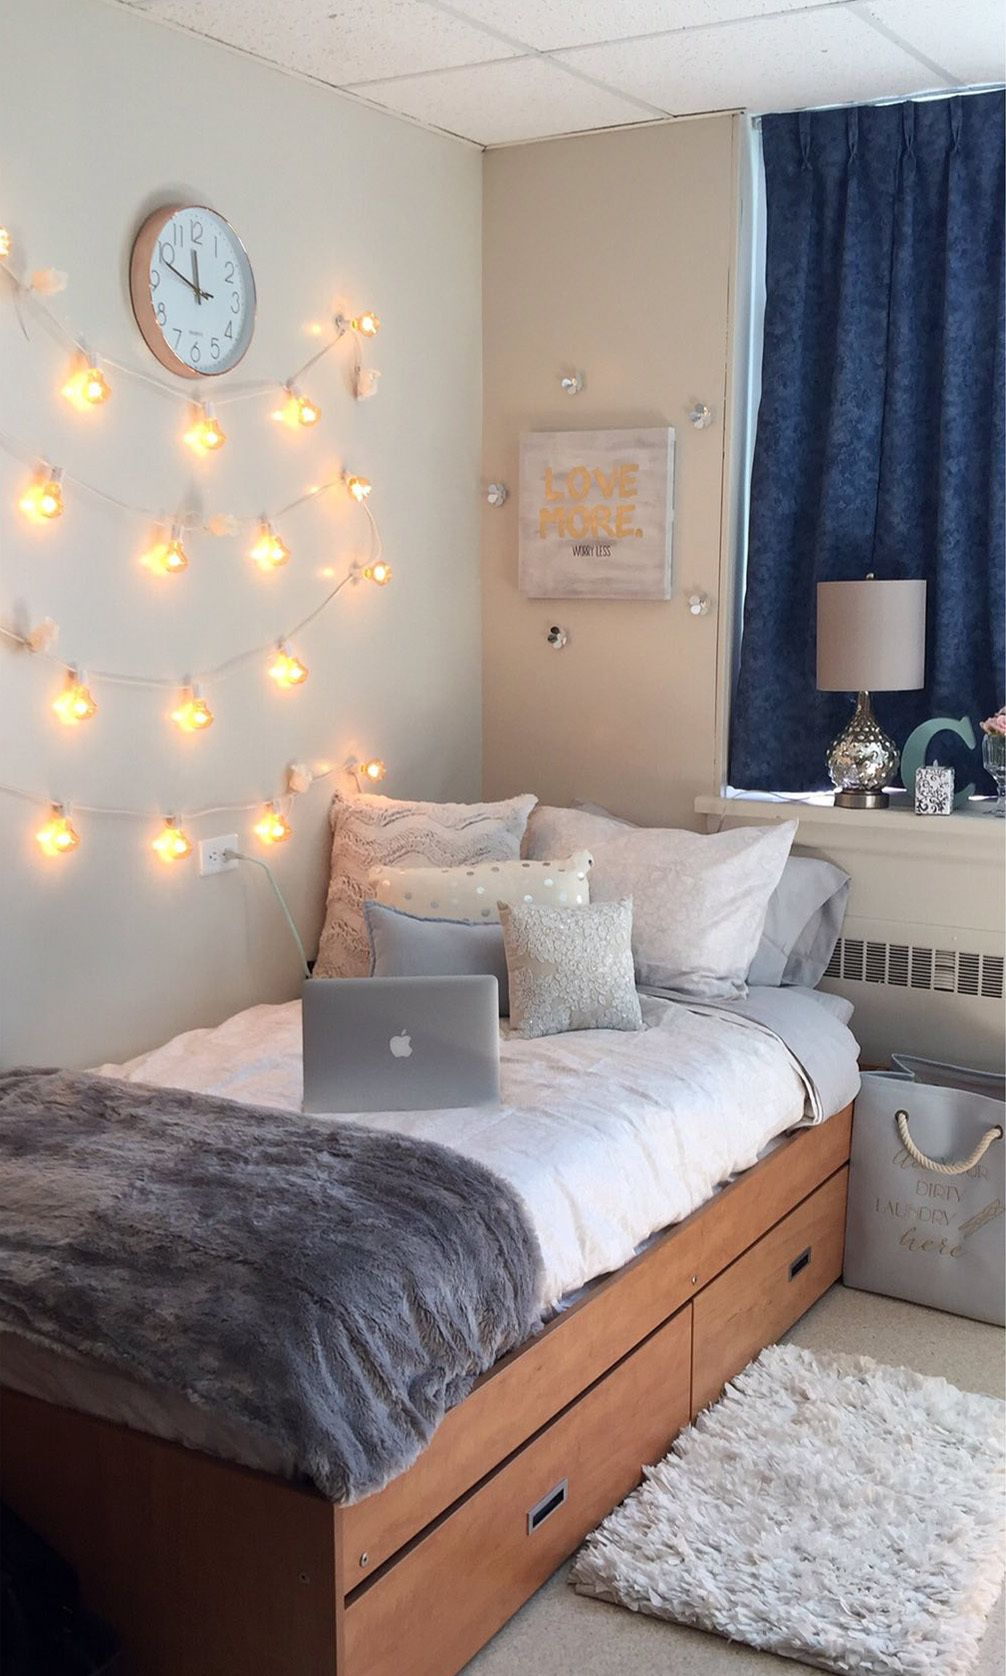 36 Dorm Room Before and Afters That'll Totally Inspire You #collegedormroomideas